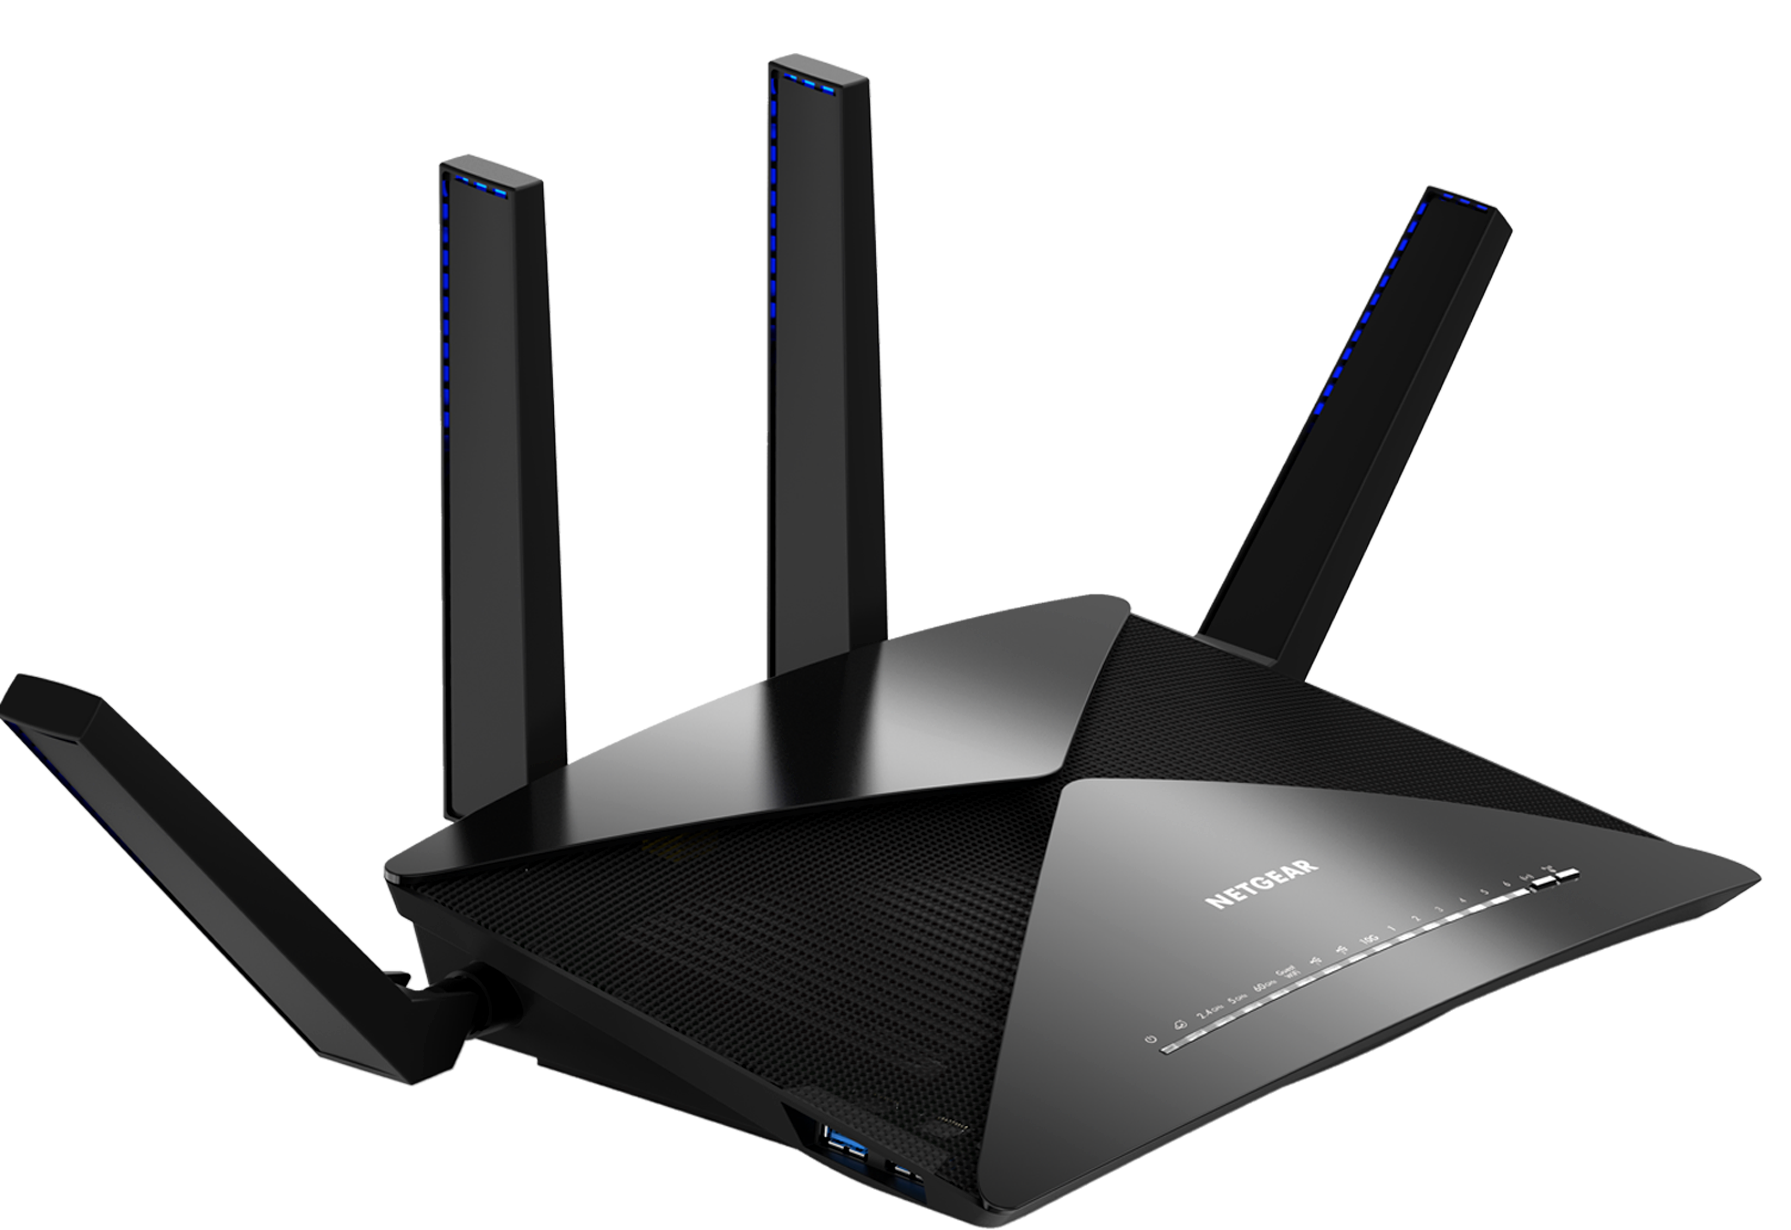 Router Netgear Nighthawk X10 Smart WiFi WAN: 1xGigabit WiFi: 802.11ad-7200Mbps VPN 6xLAN